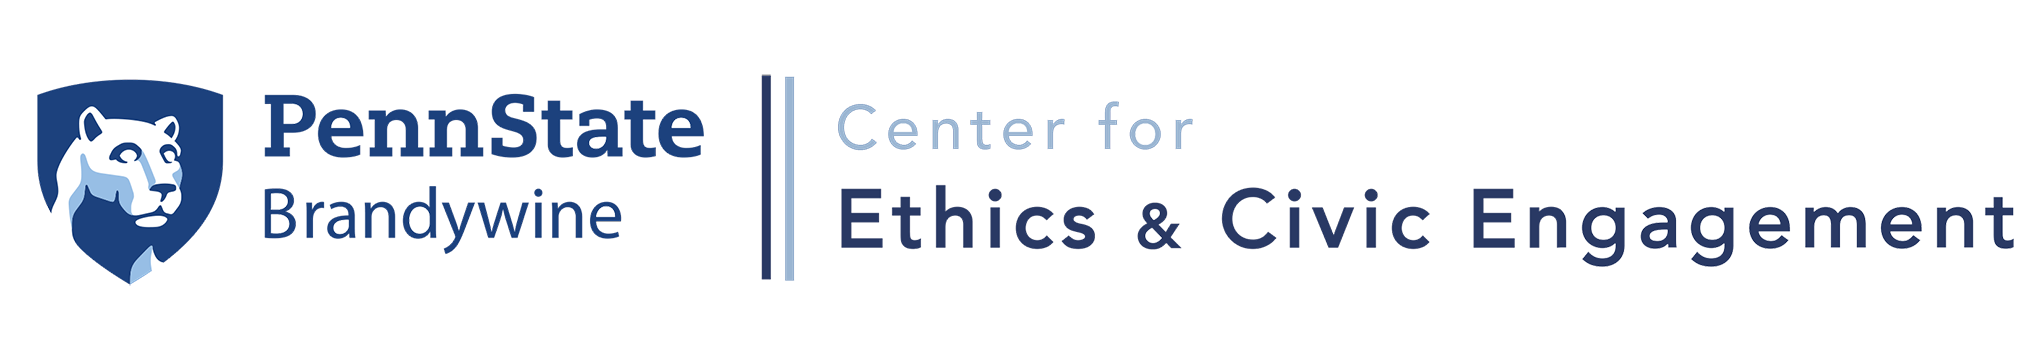 Center for Ethics & Civic Engagement